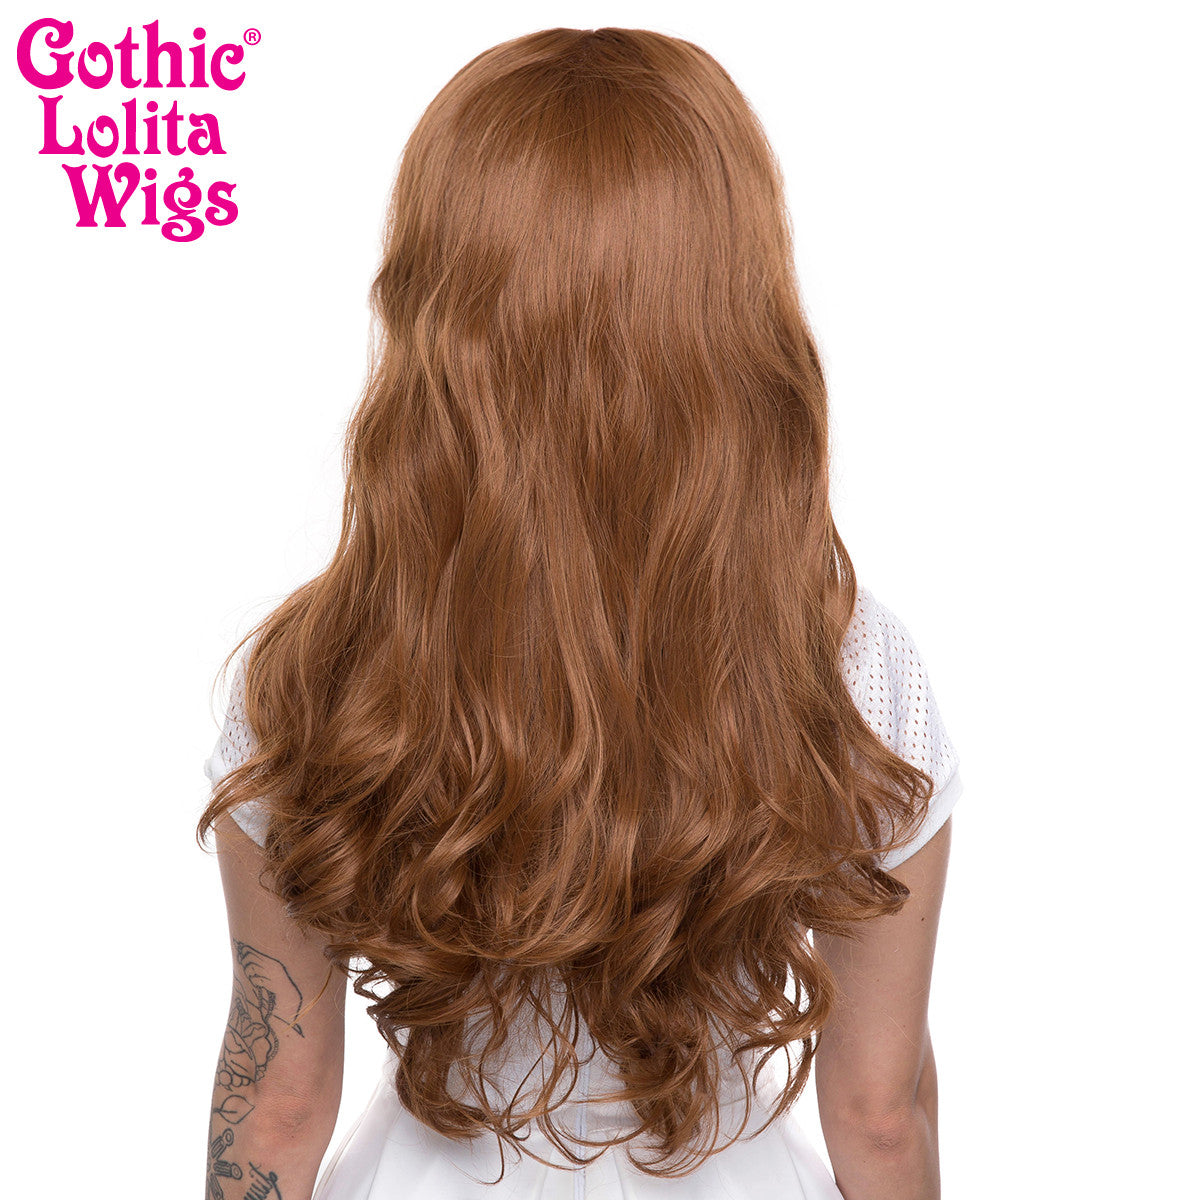 Gothic Lolita Wigs® <br> Heartbreaker Collection - Caramel Brown Mix -00062